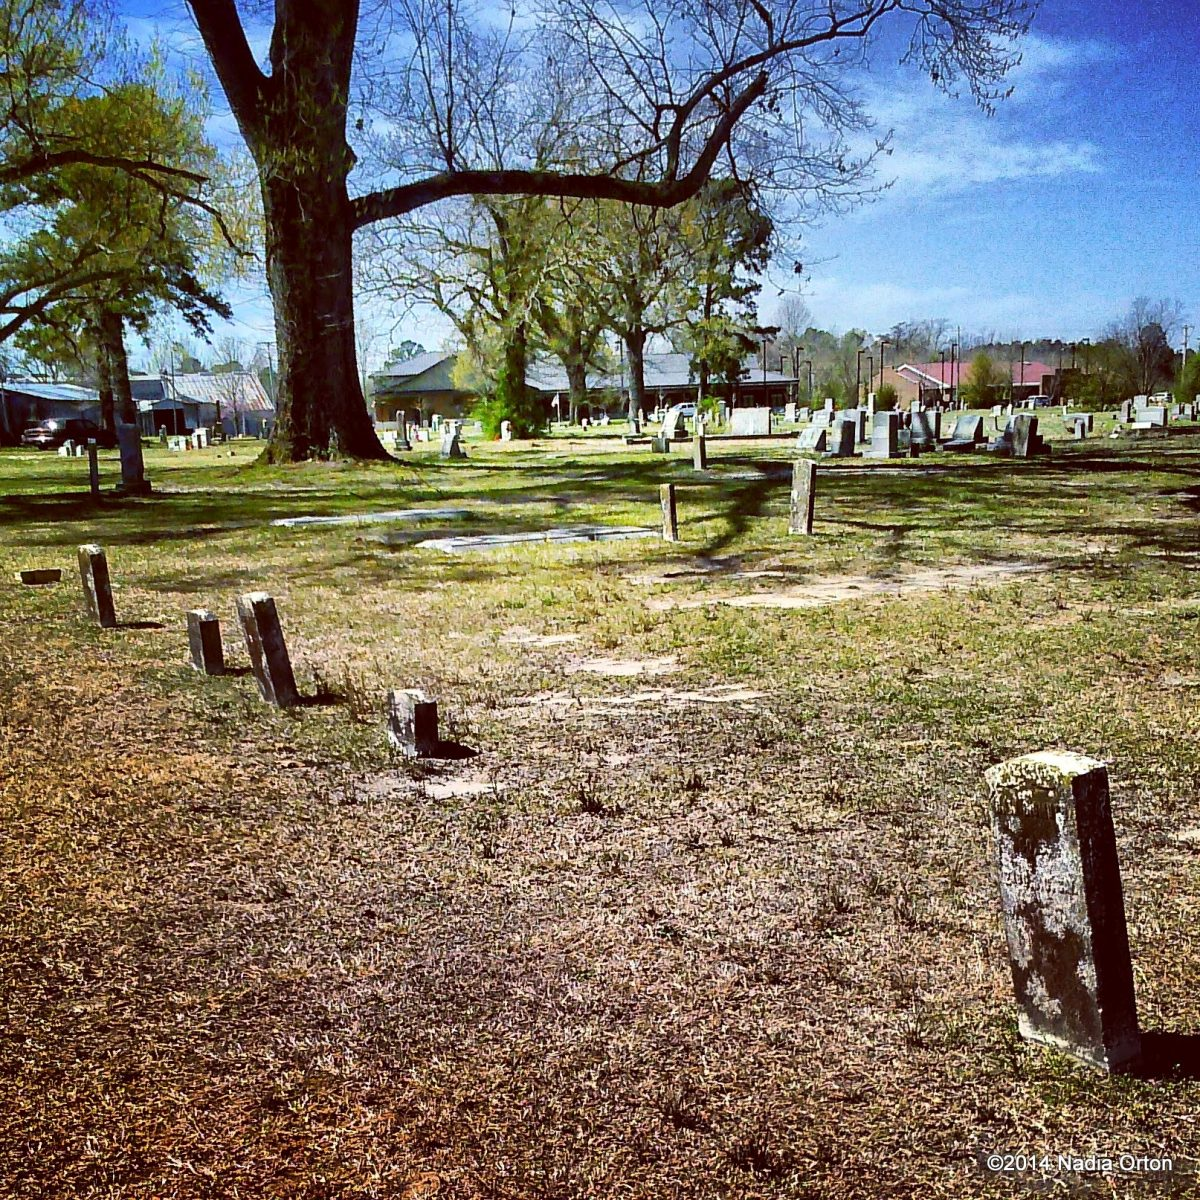 Chowan County, North Carolina: Images from Vine Oak Cemetery